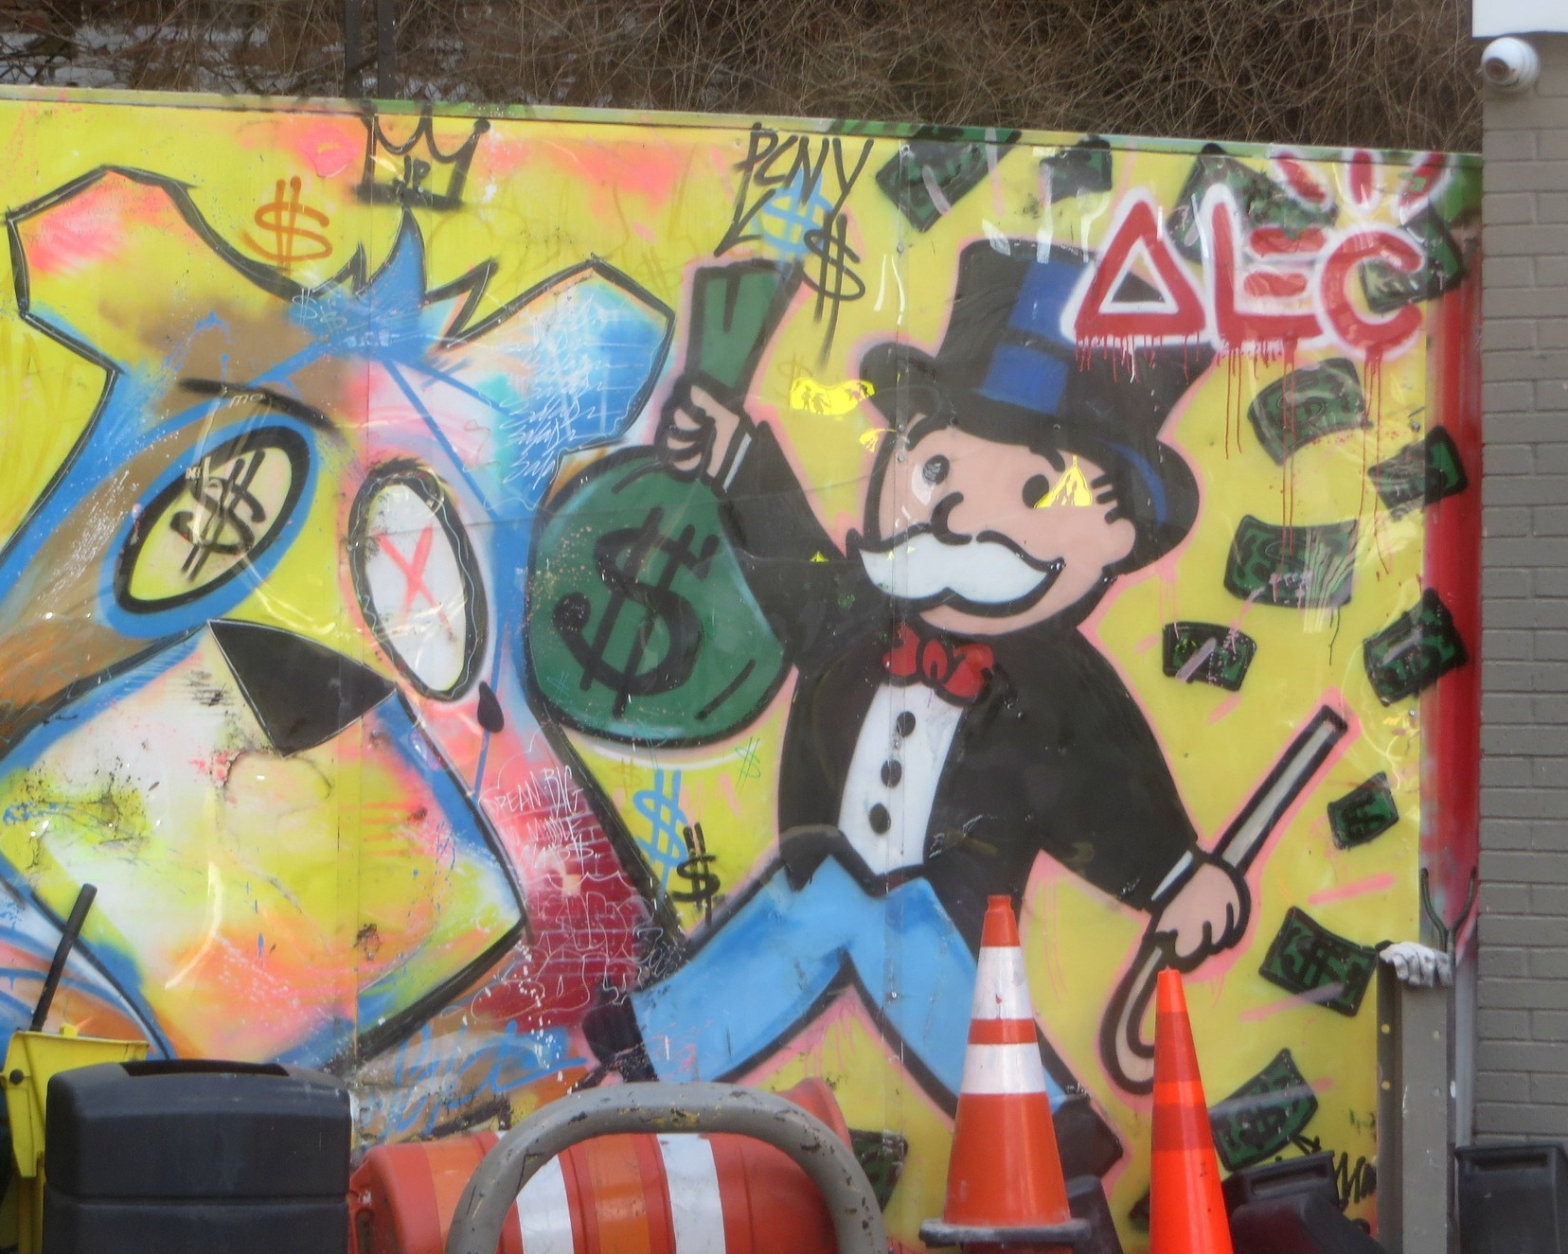 Graffiti of the Monopoly Man holding a bag of cash